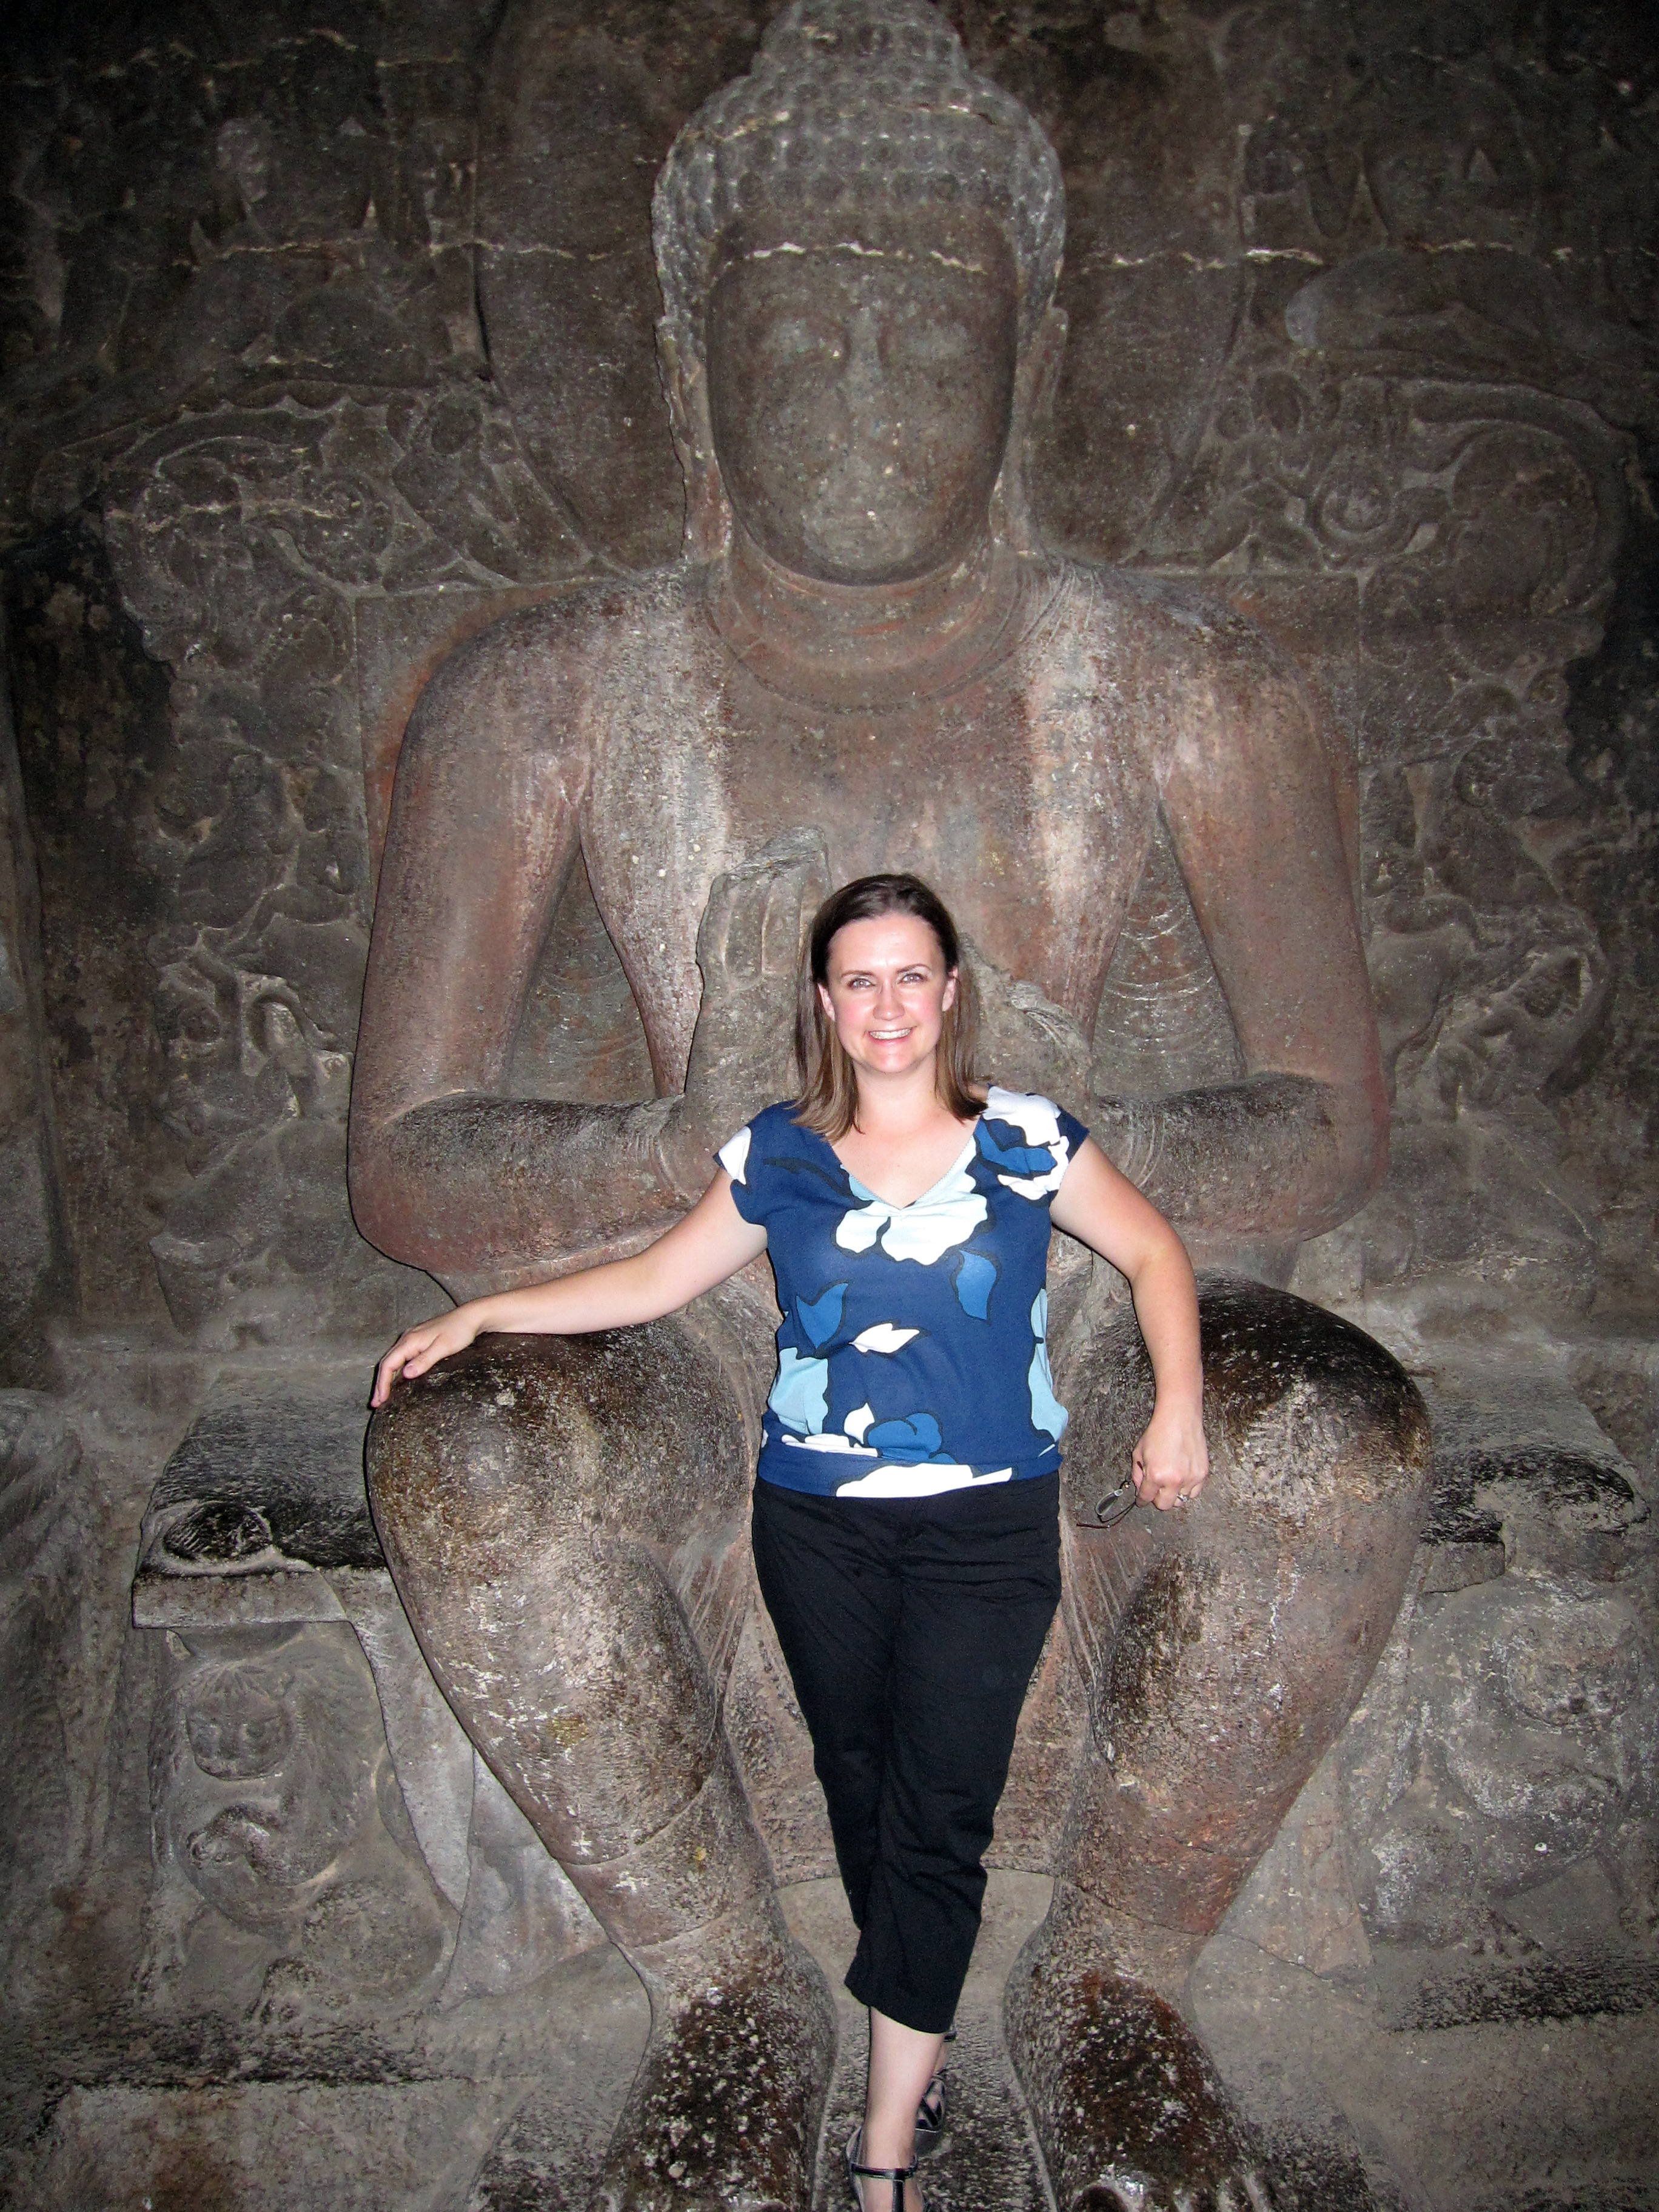 Me in the lap of the Buddha